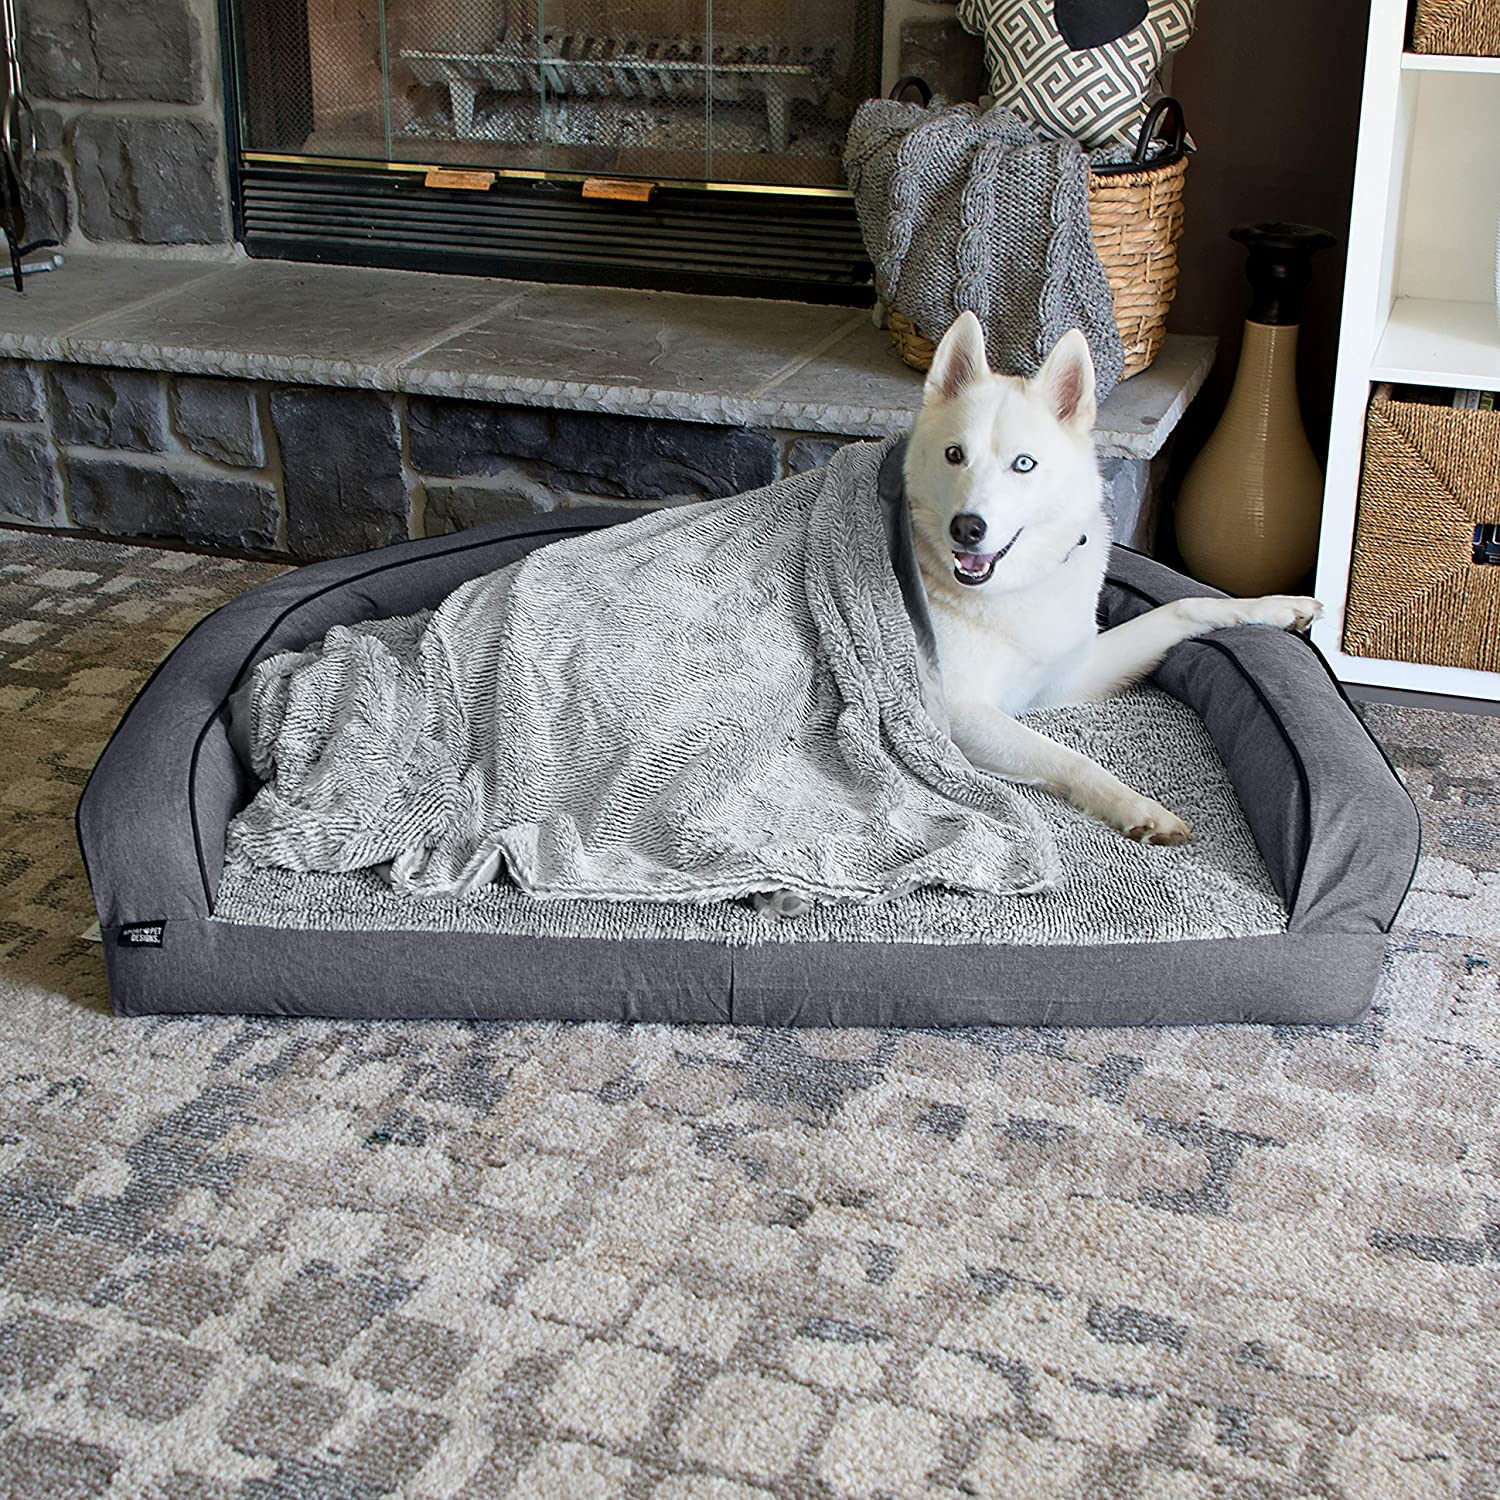 Dog relaxing on extra large dog. bed